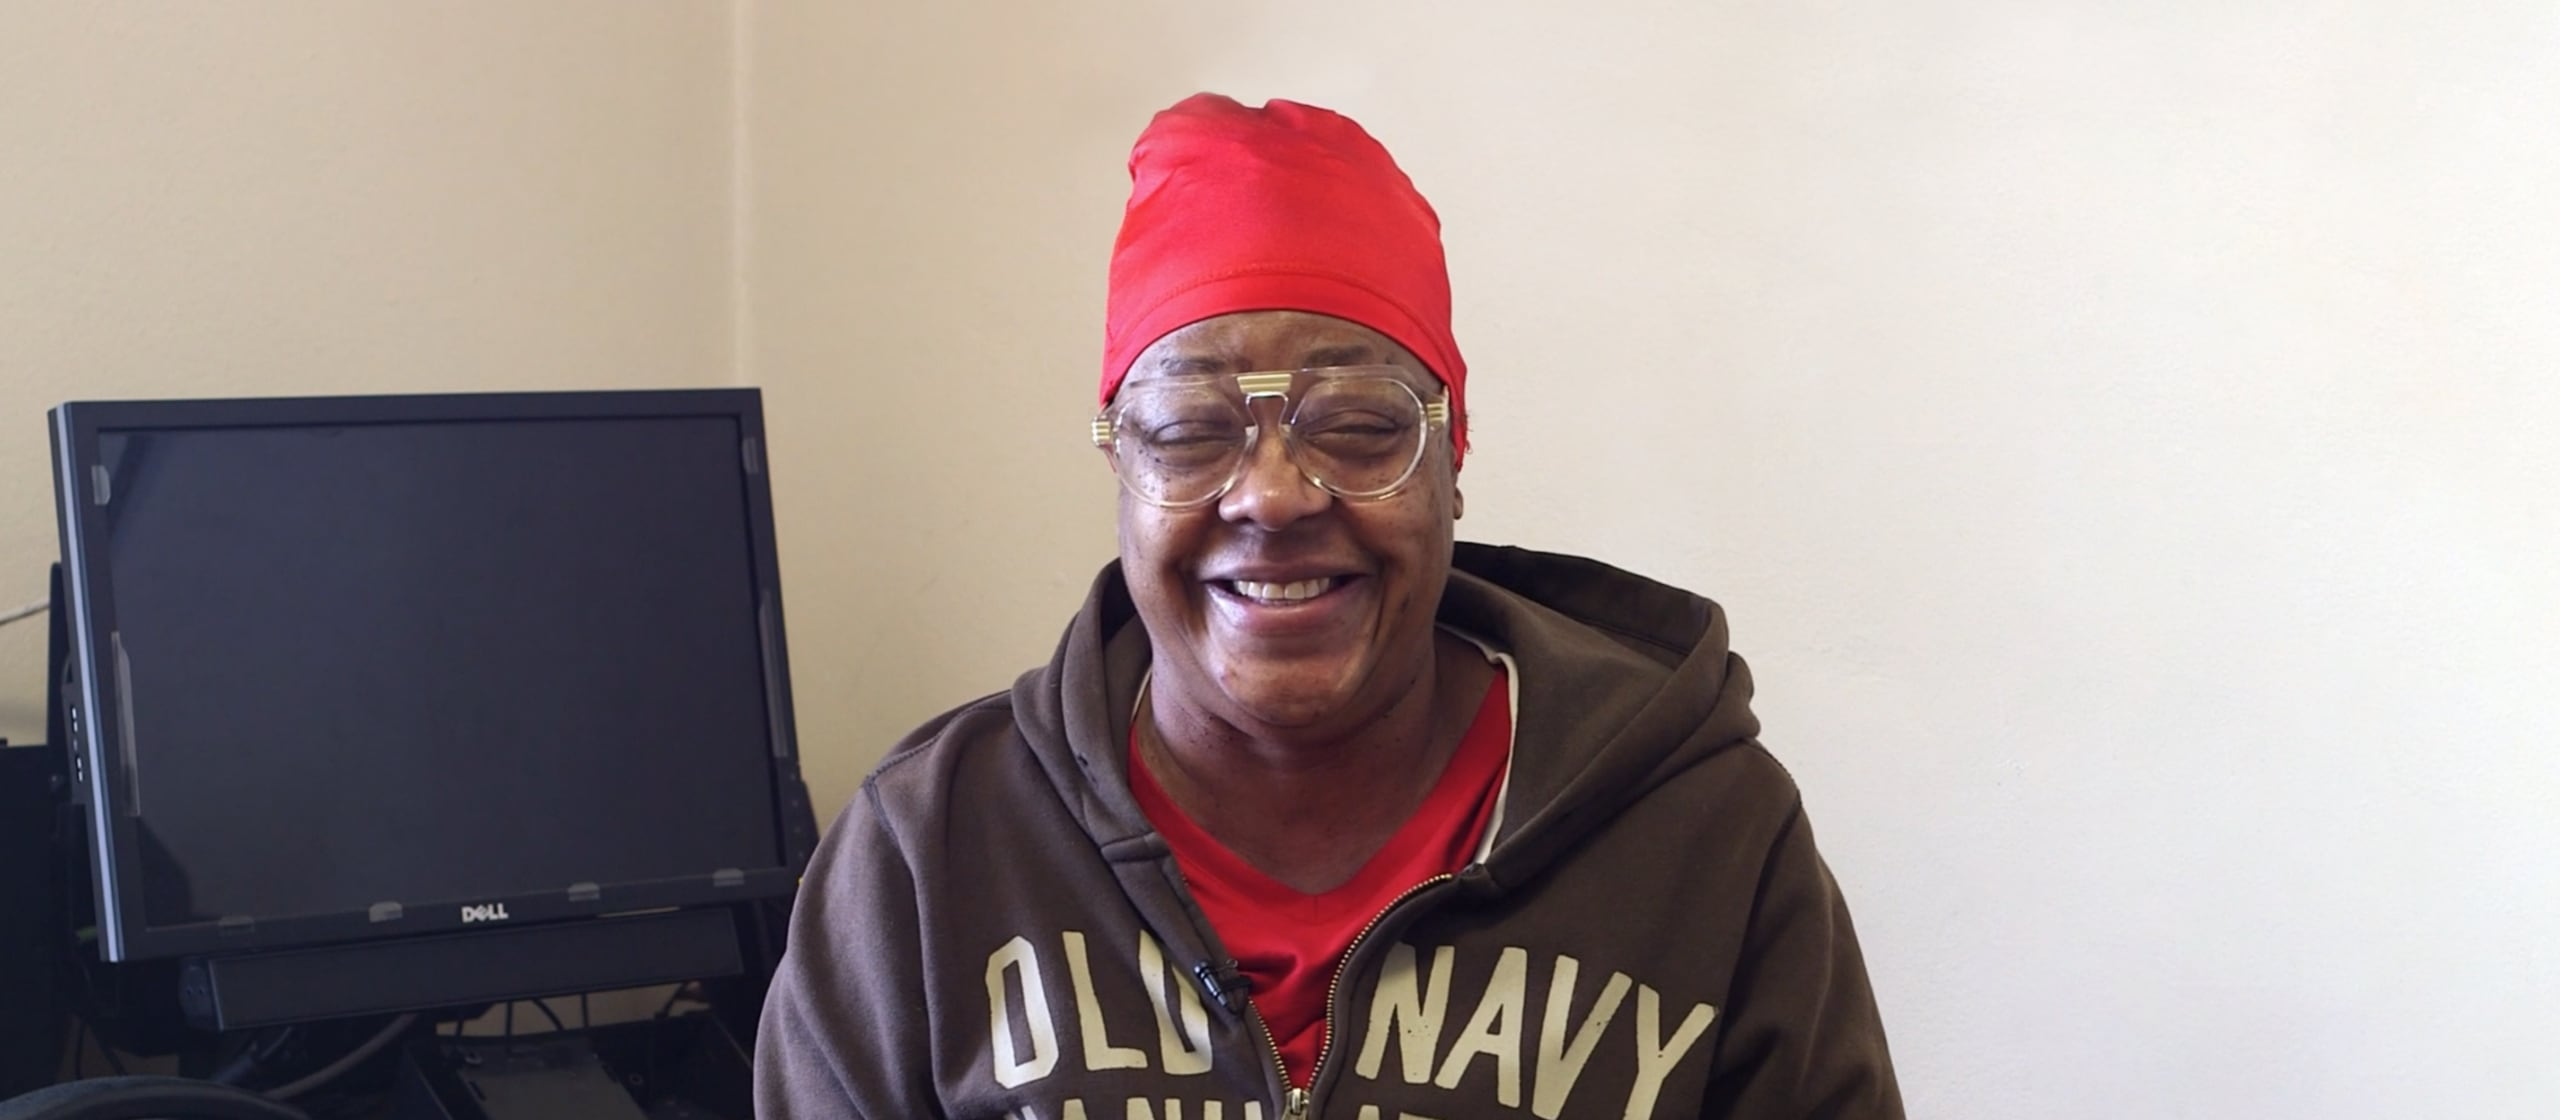 A person with glasses smiling from the seniors homelessness prevention project